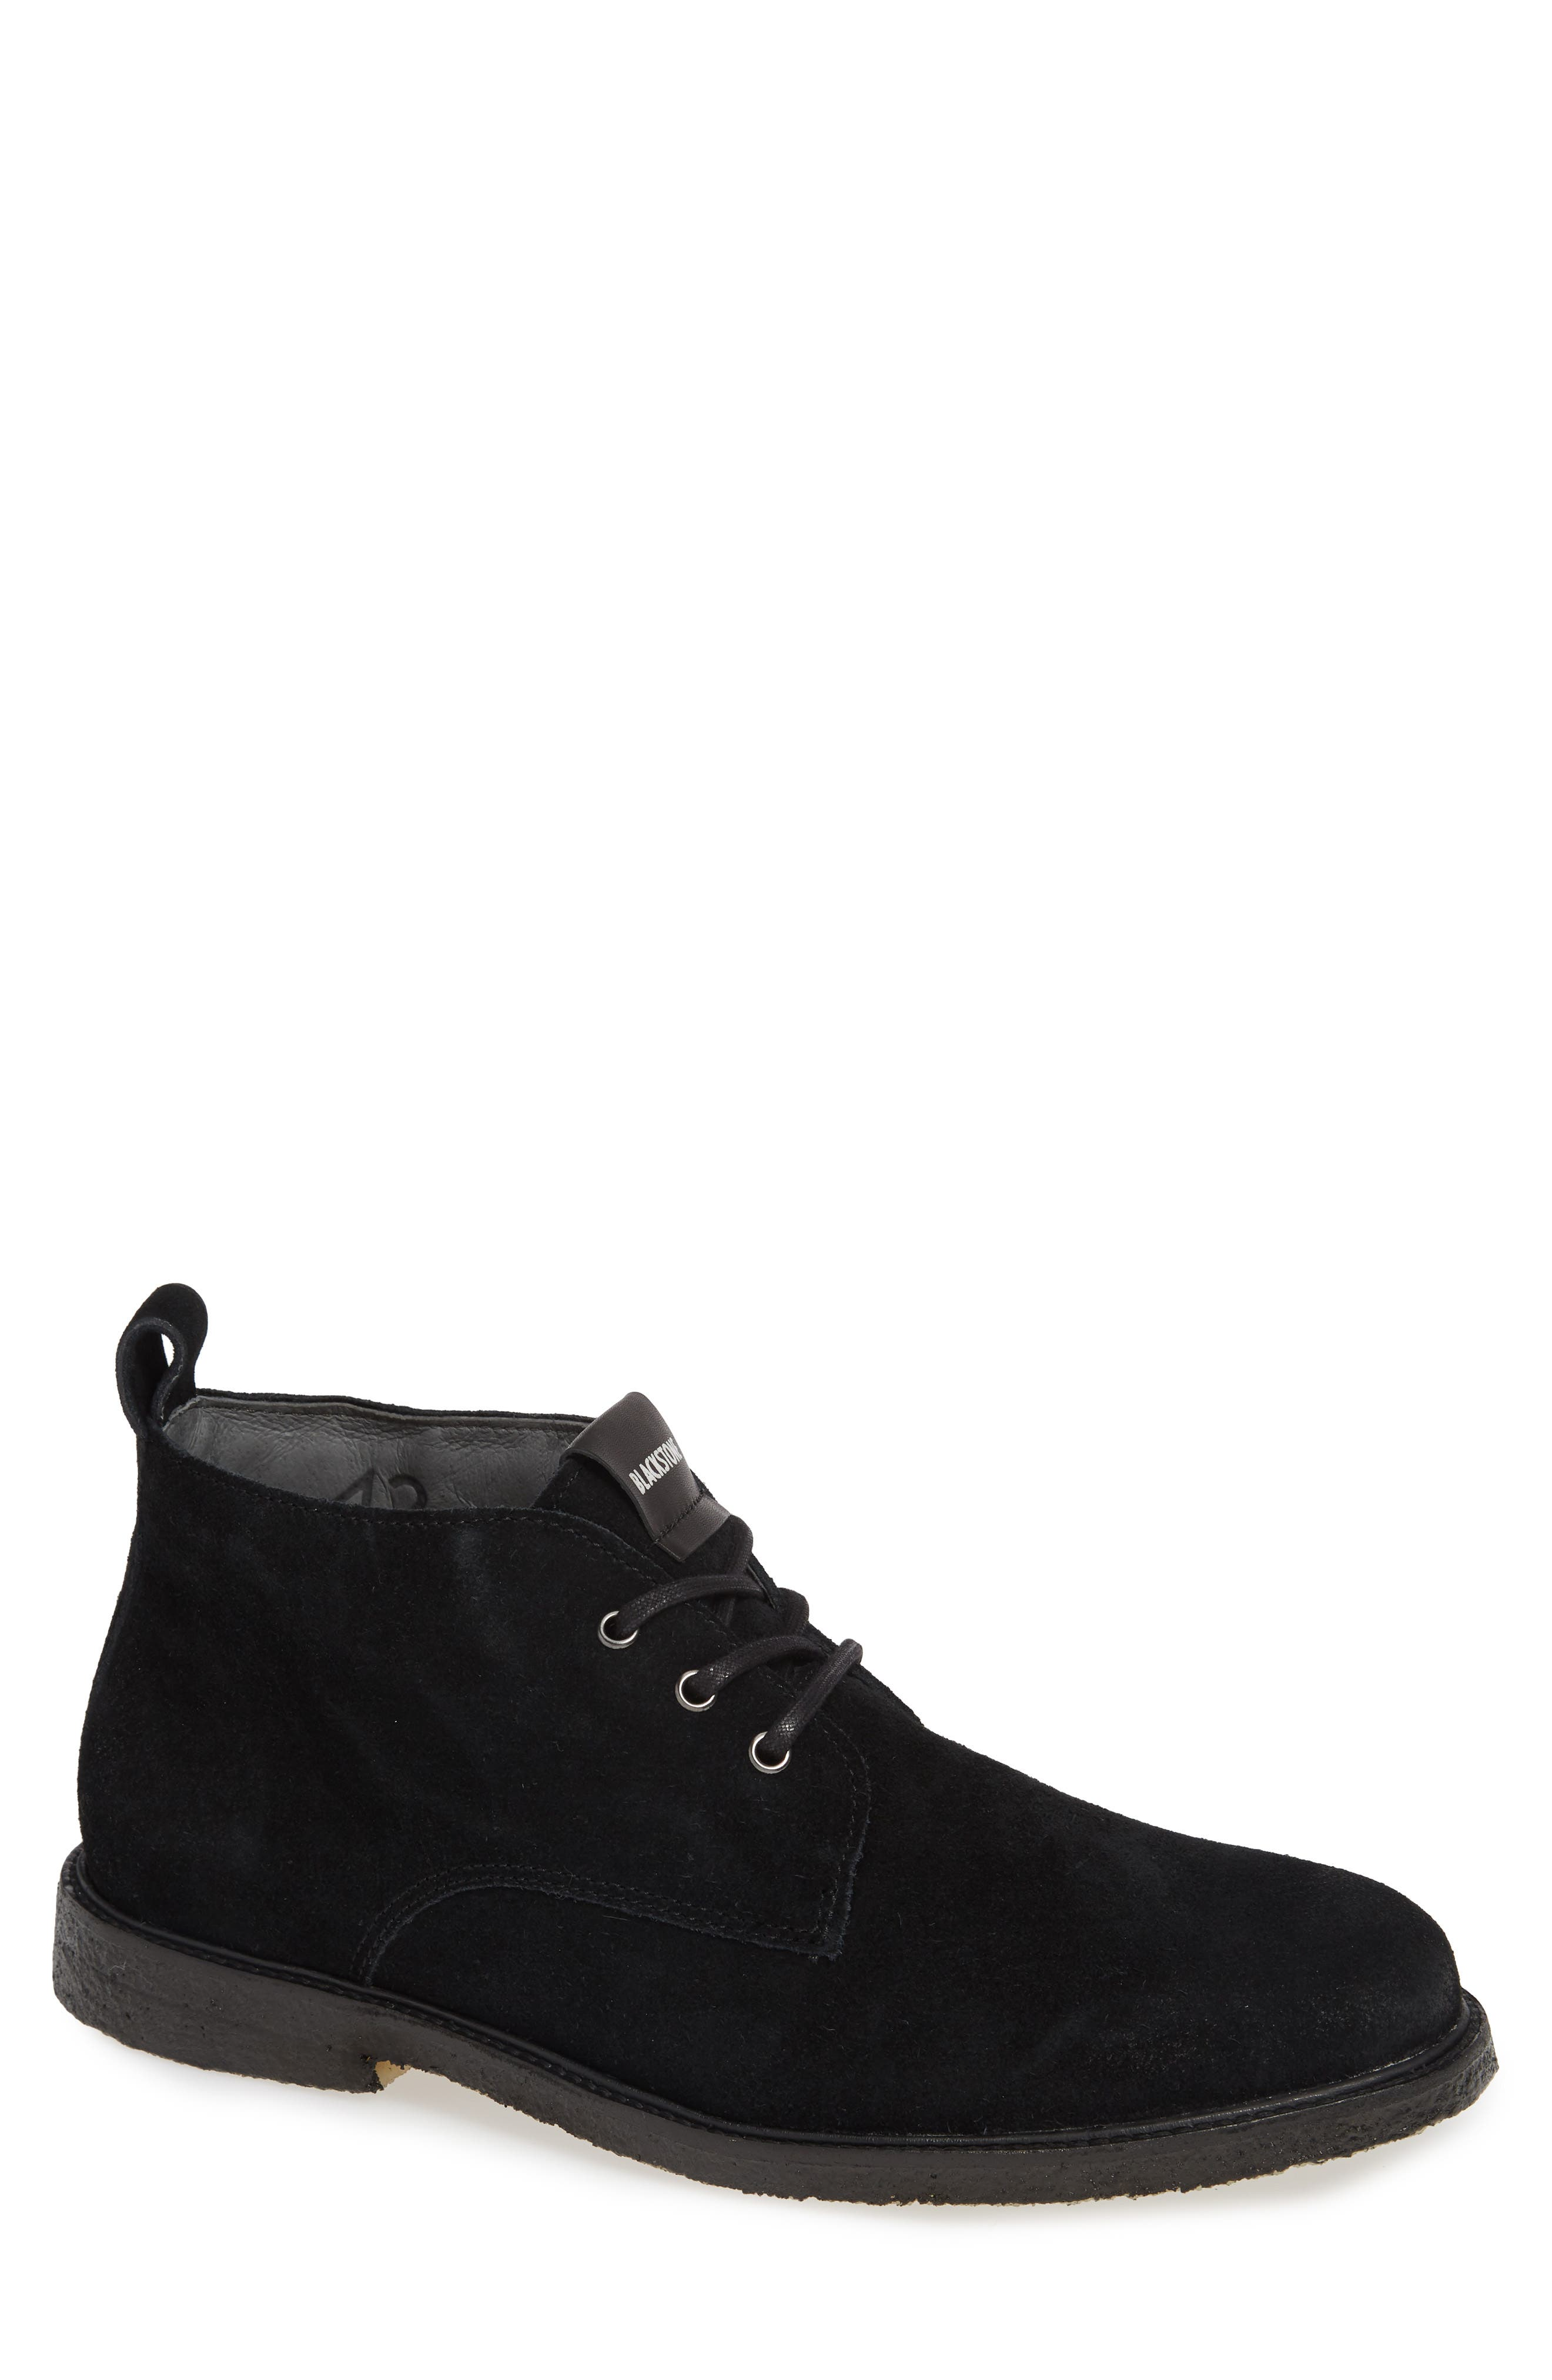 QM82 Chukka Boot,                             Main thumbnail 1, color,                             BLACK